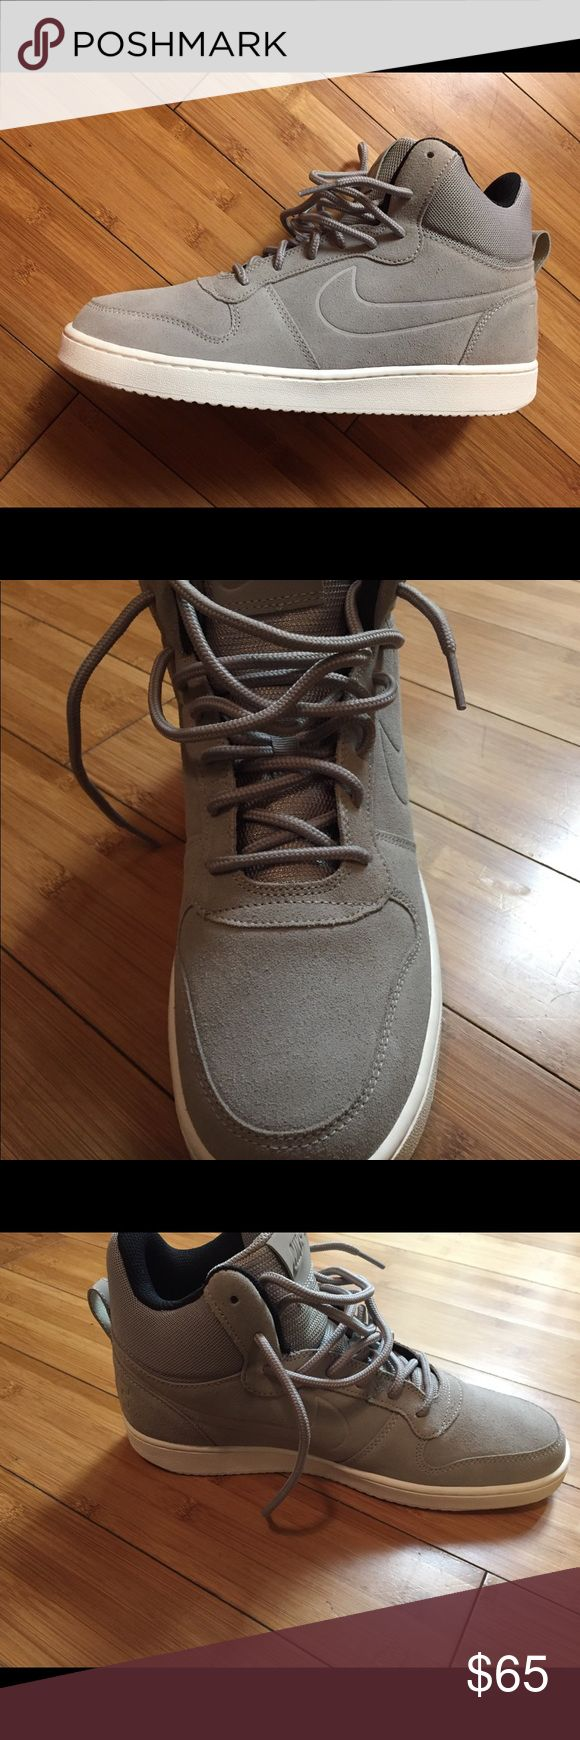 Gray Nike hightops suede material Brand new Nike Shoes